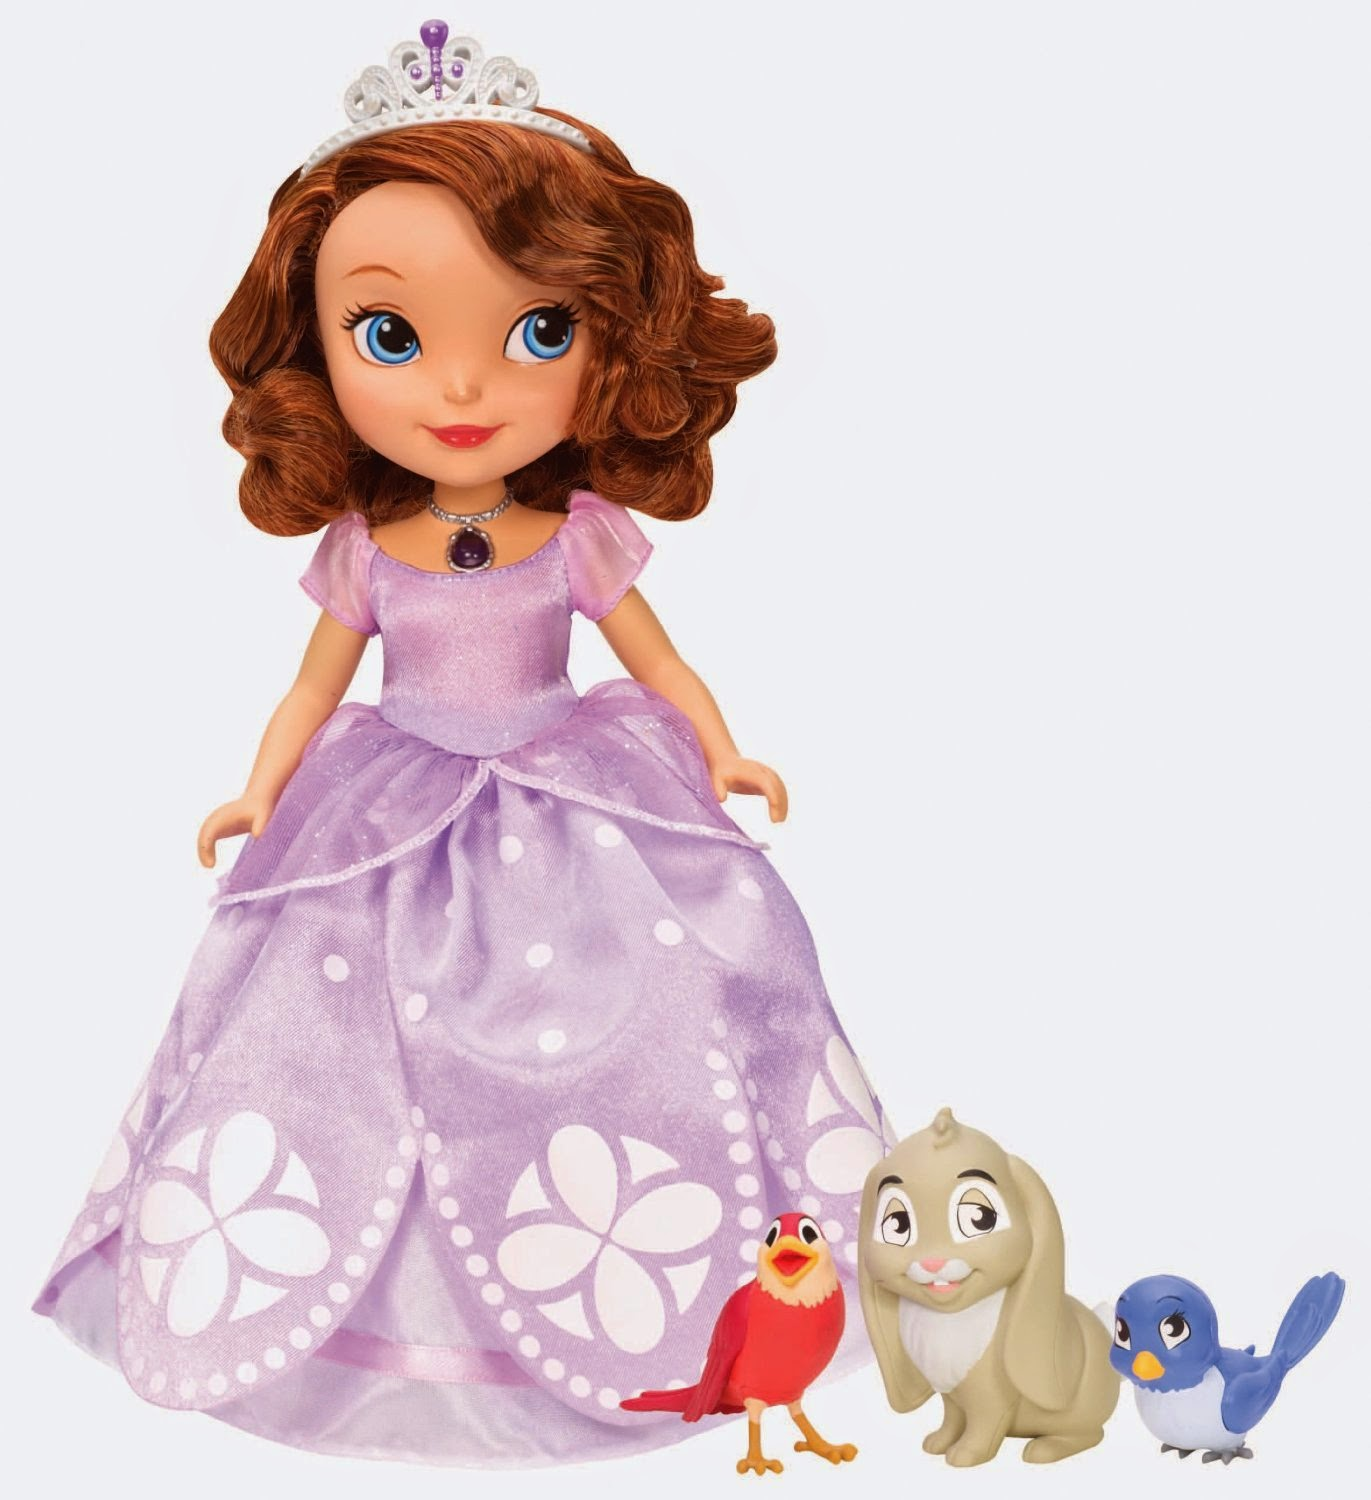 4littleboyz online toy shop clothings sofia the first - Image princesse sofia ...